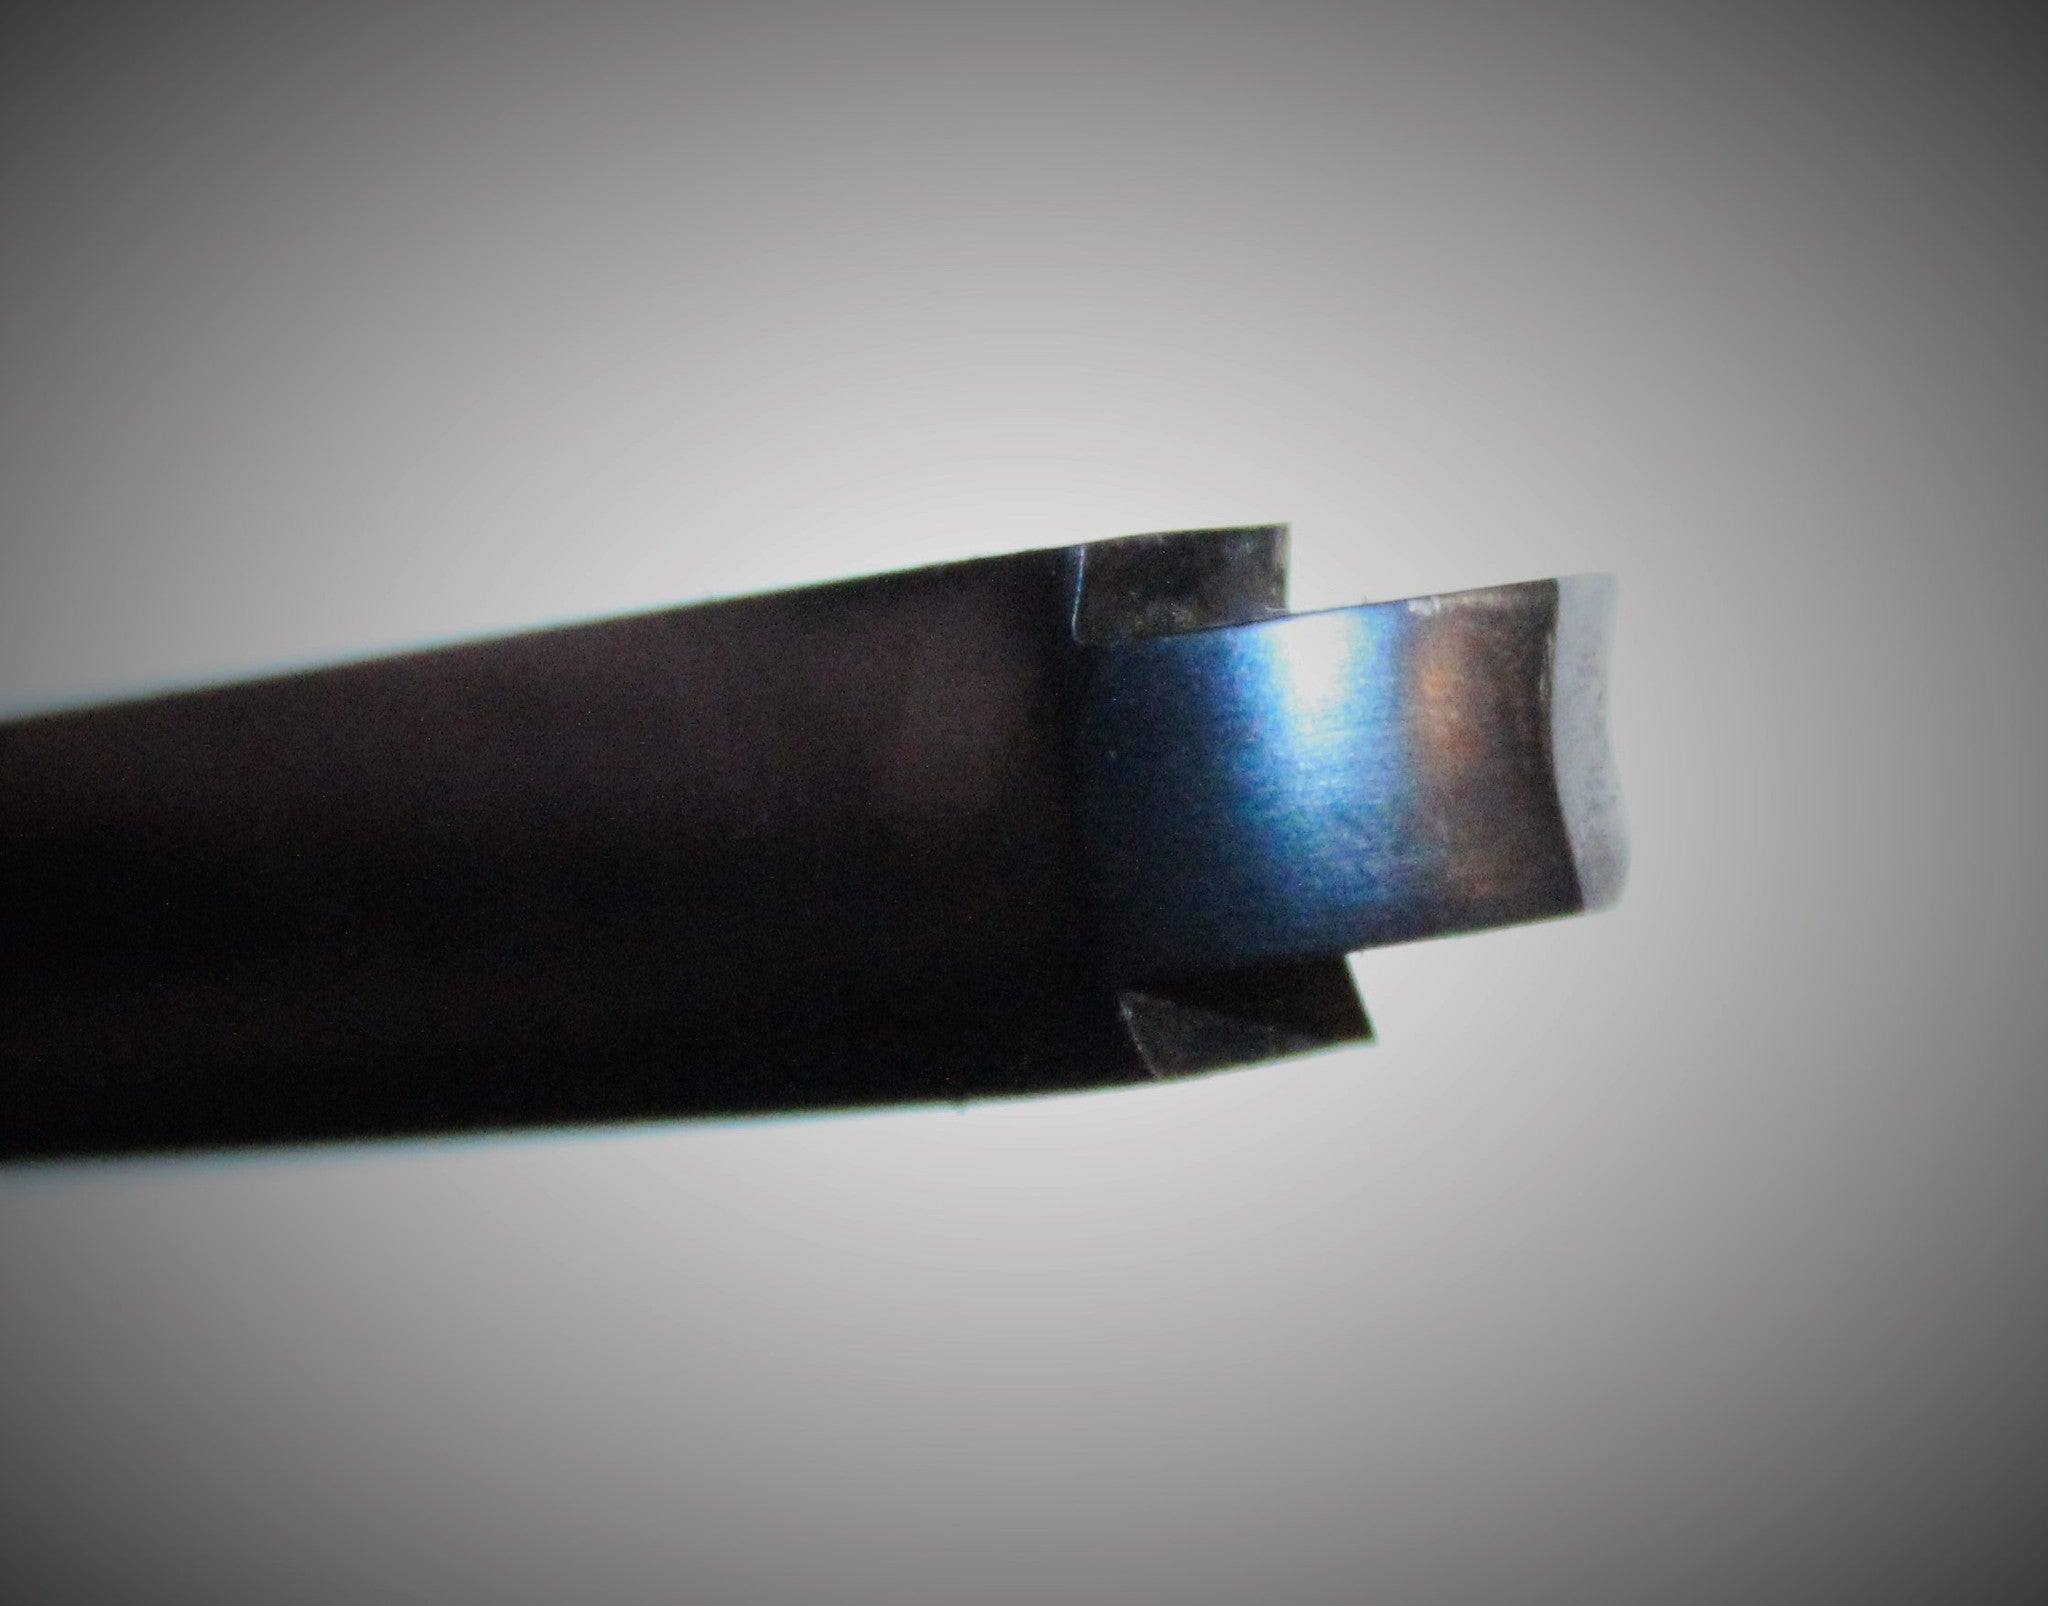 Extractor - .22 Hornet - Rust-Blued Finish